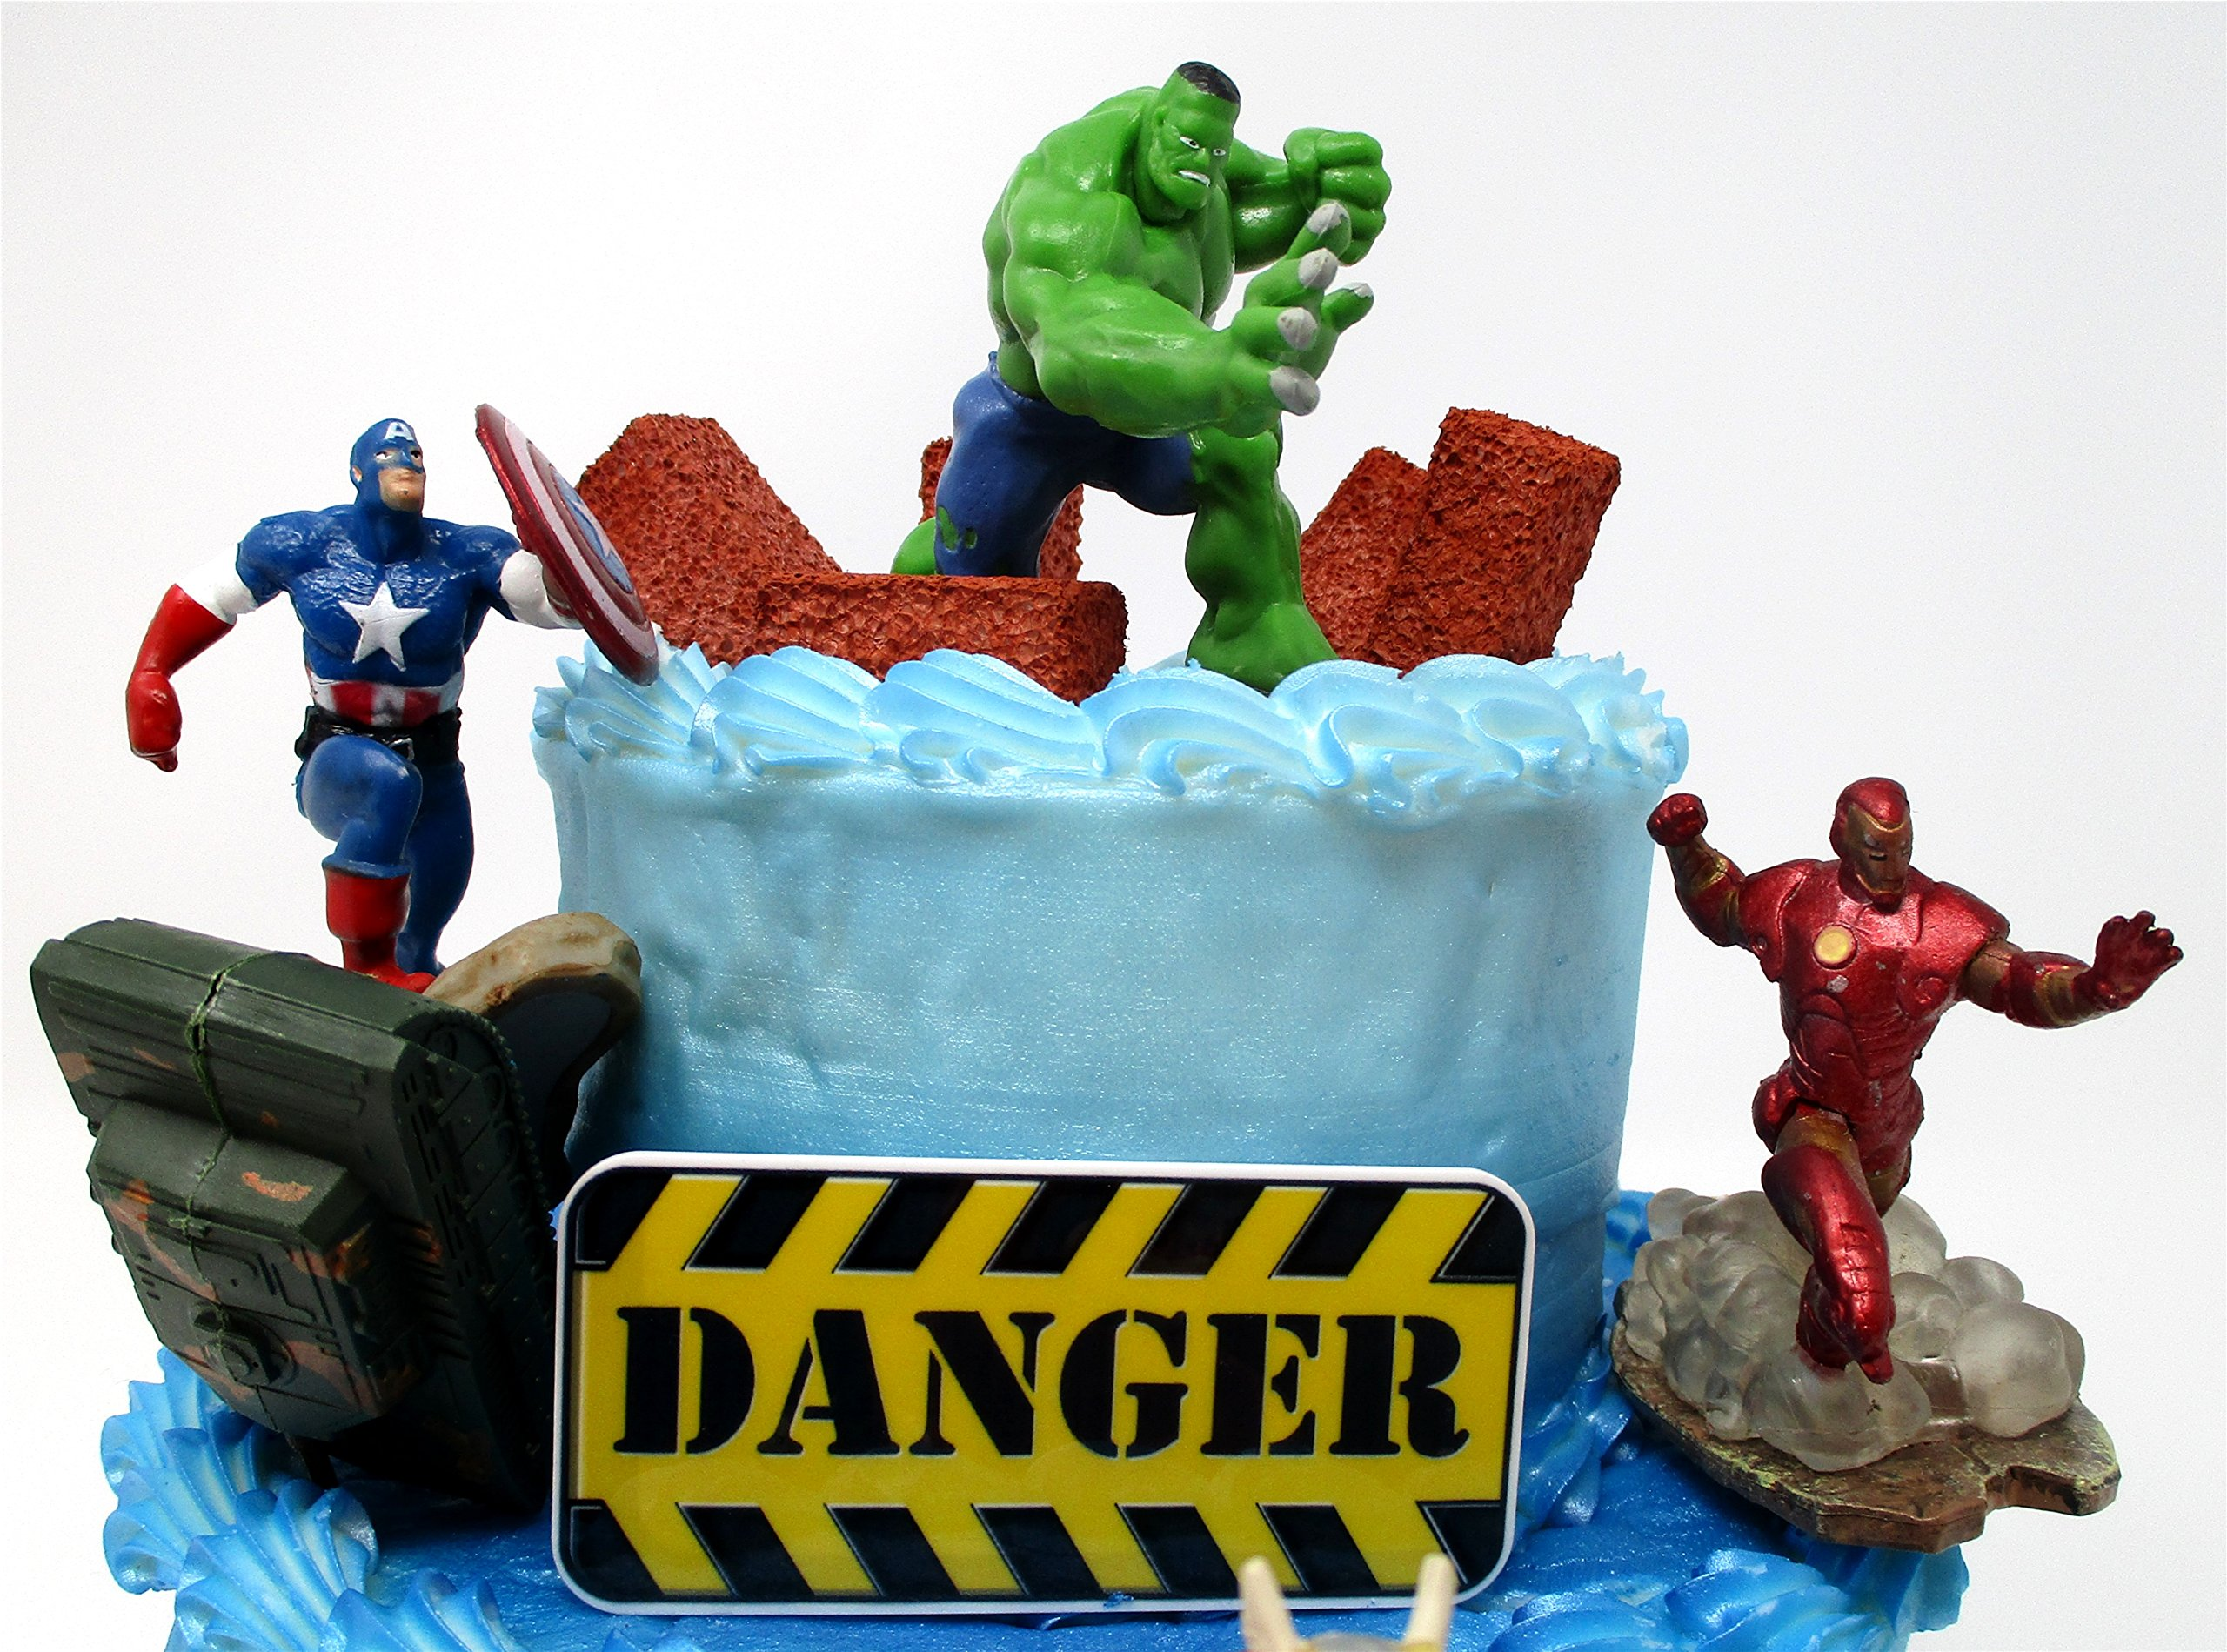 AVENGERS Deluxe Super Hero Birthday Cake Topper Set Featuring Avenger Figures and Decorative Themed Accessories by Cake Toppers (Image #3)